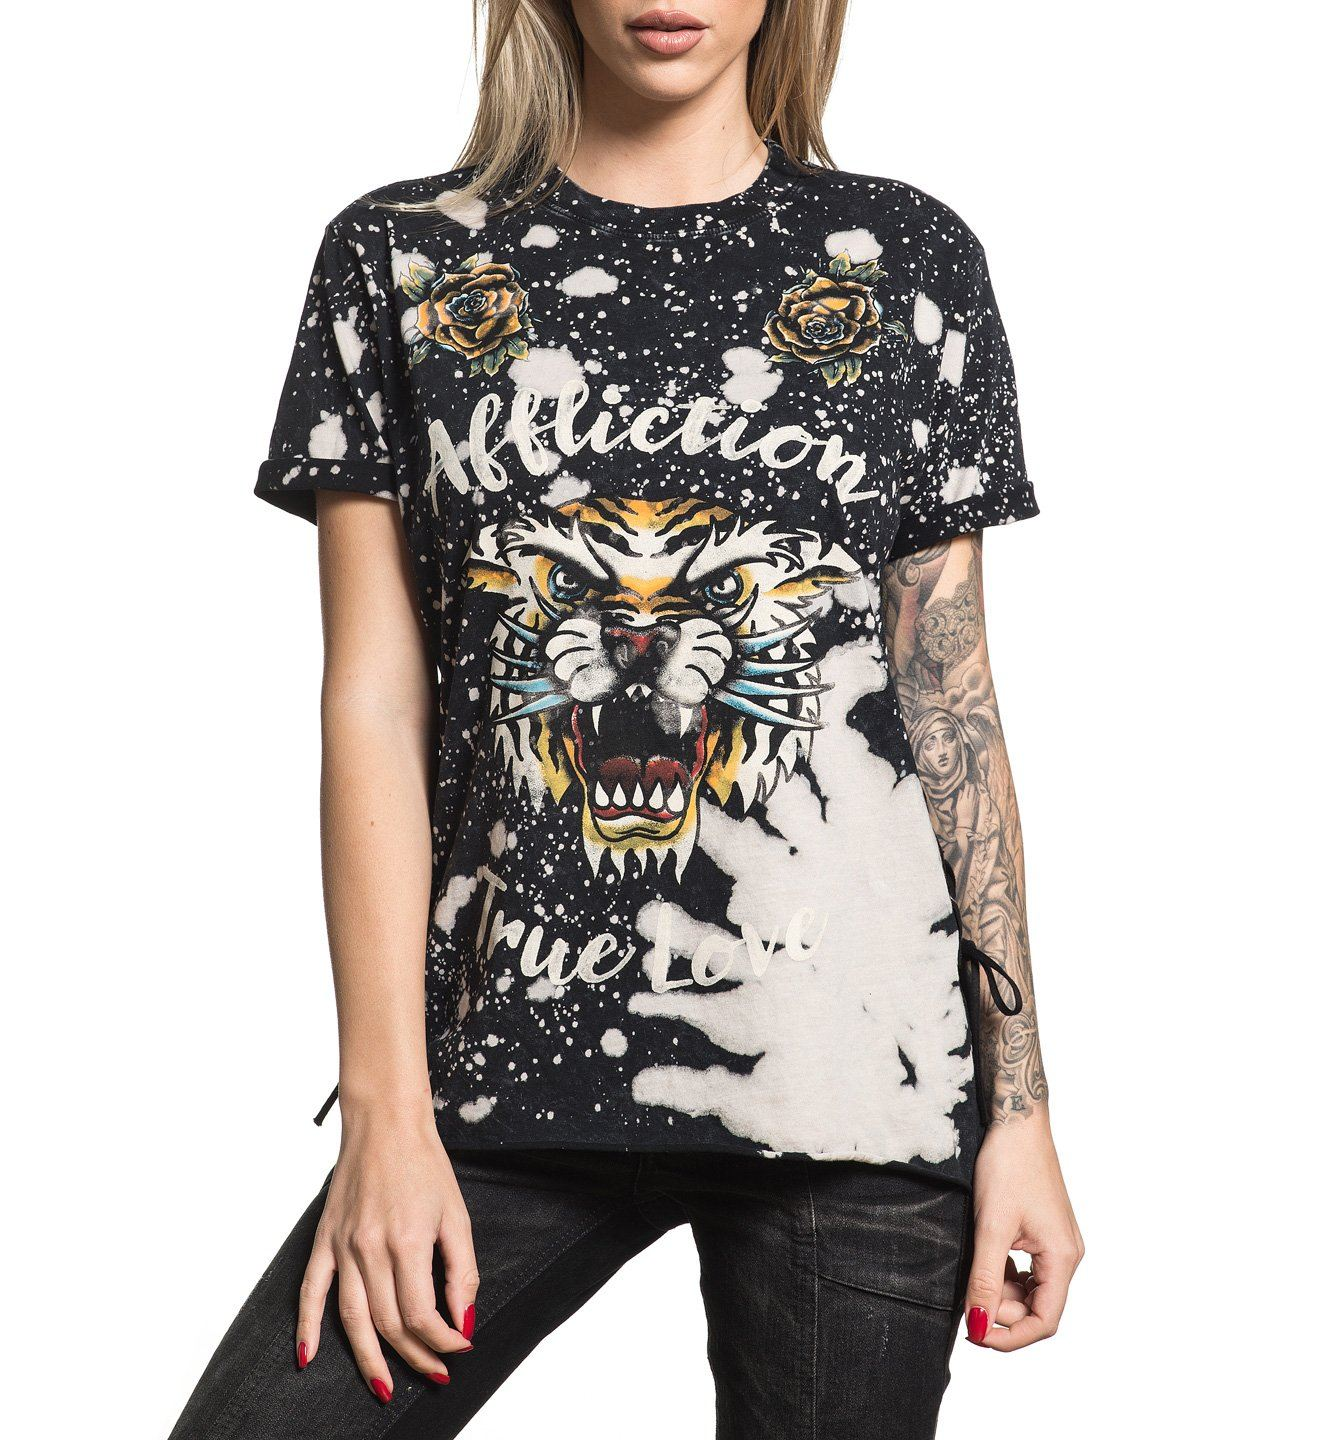 True Love - Womens Short Sleeve Tees - Affliction Clothing